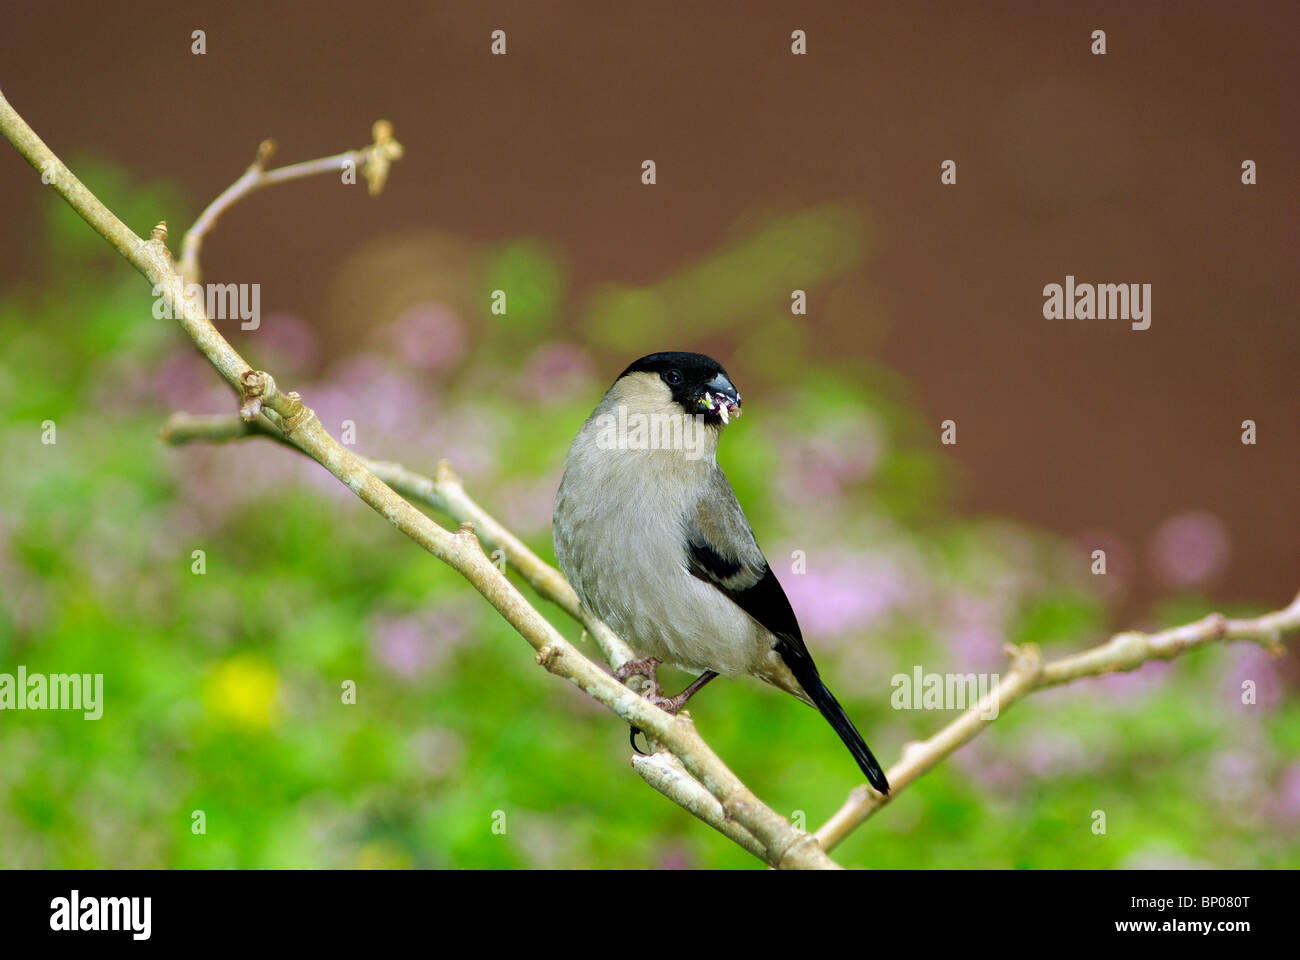 Azores Bullfinch bird eating on tree branch - Stock Image